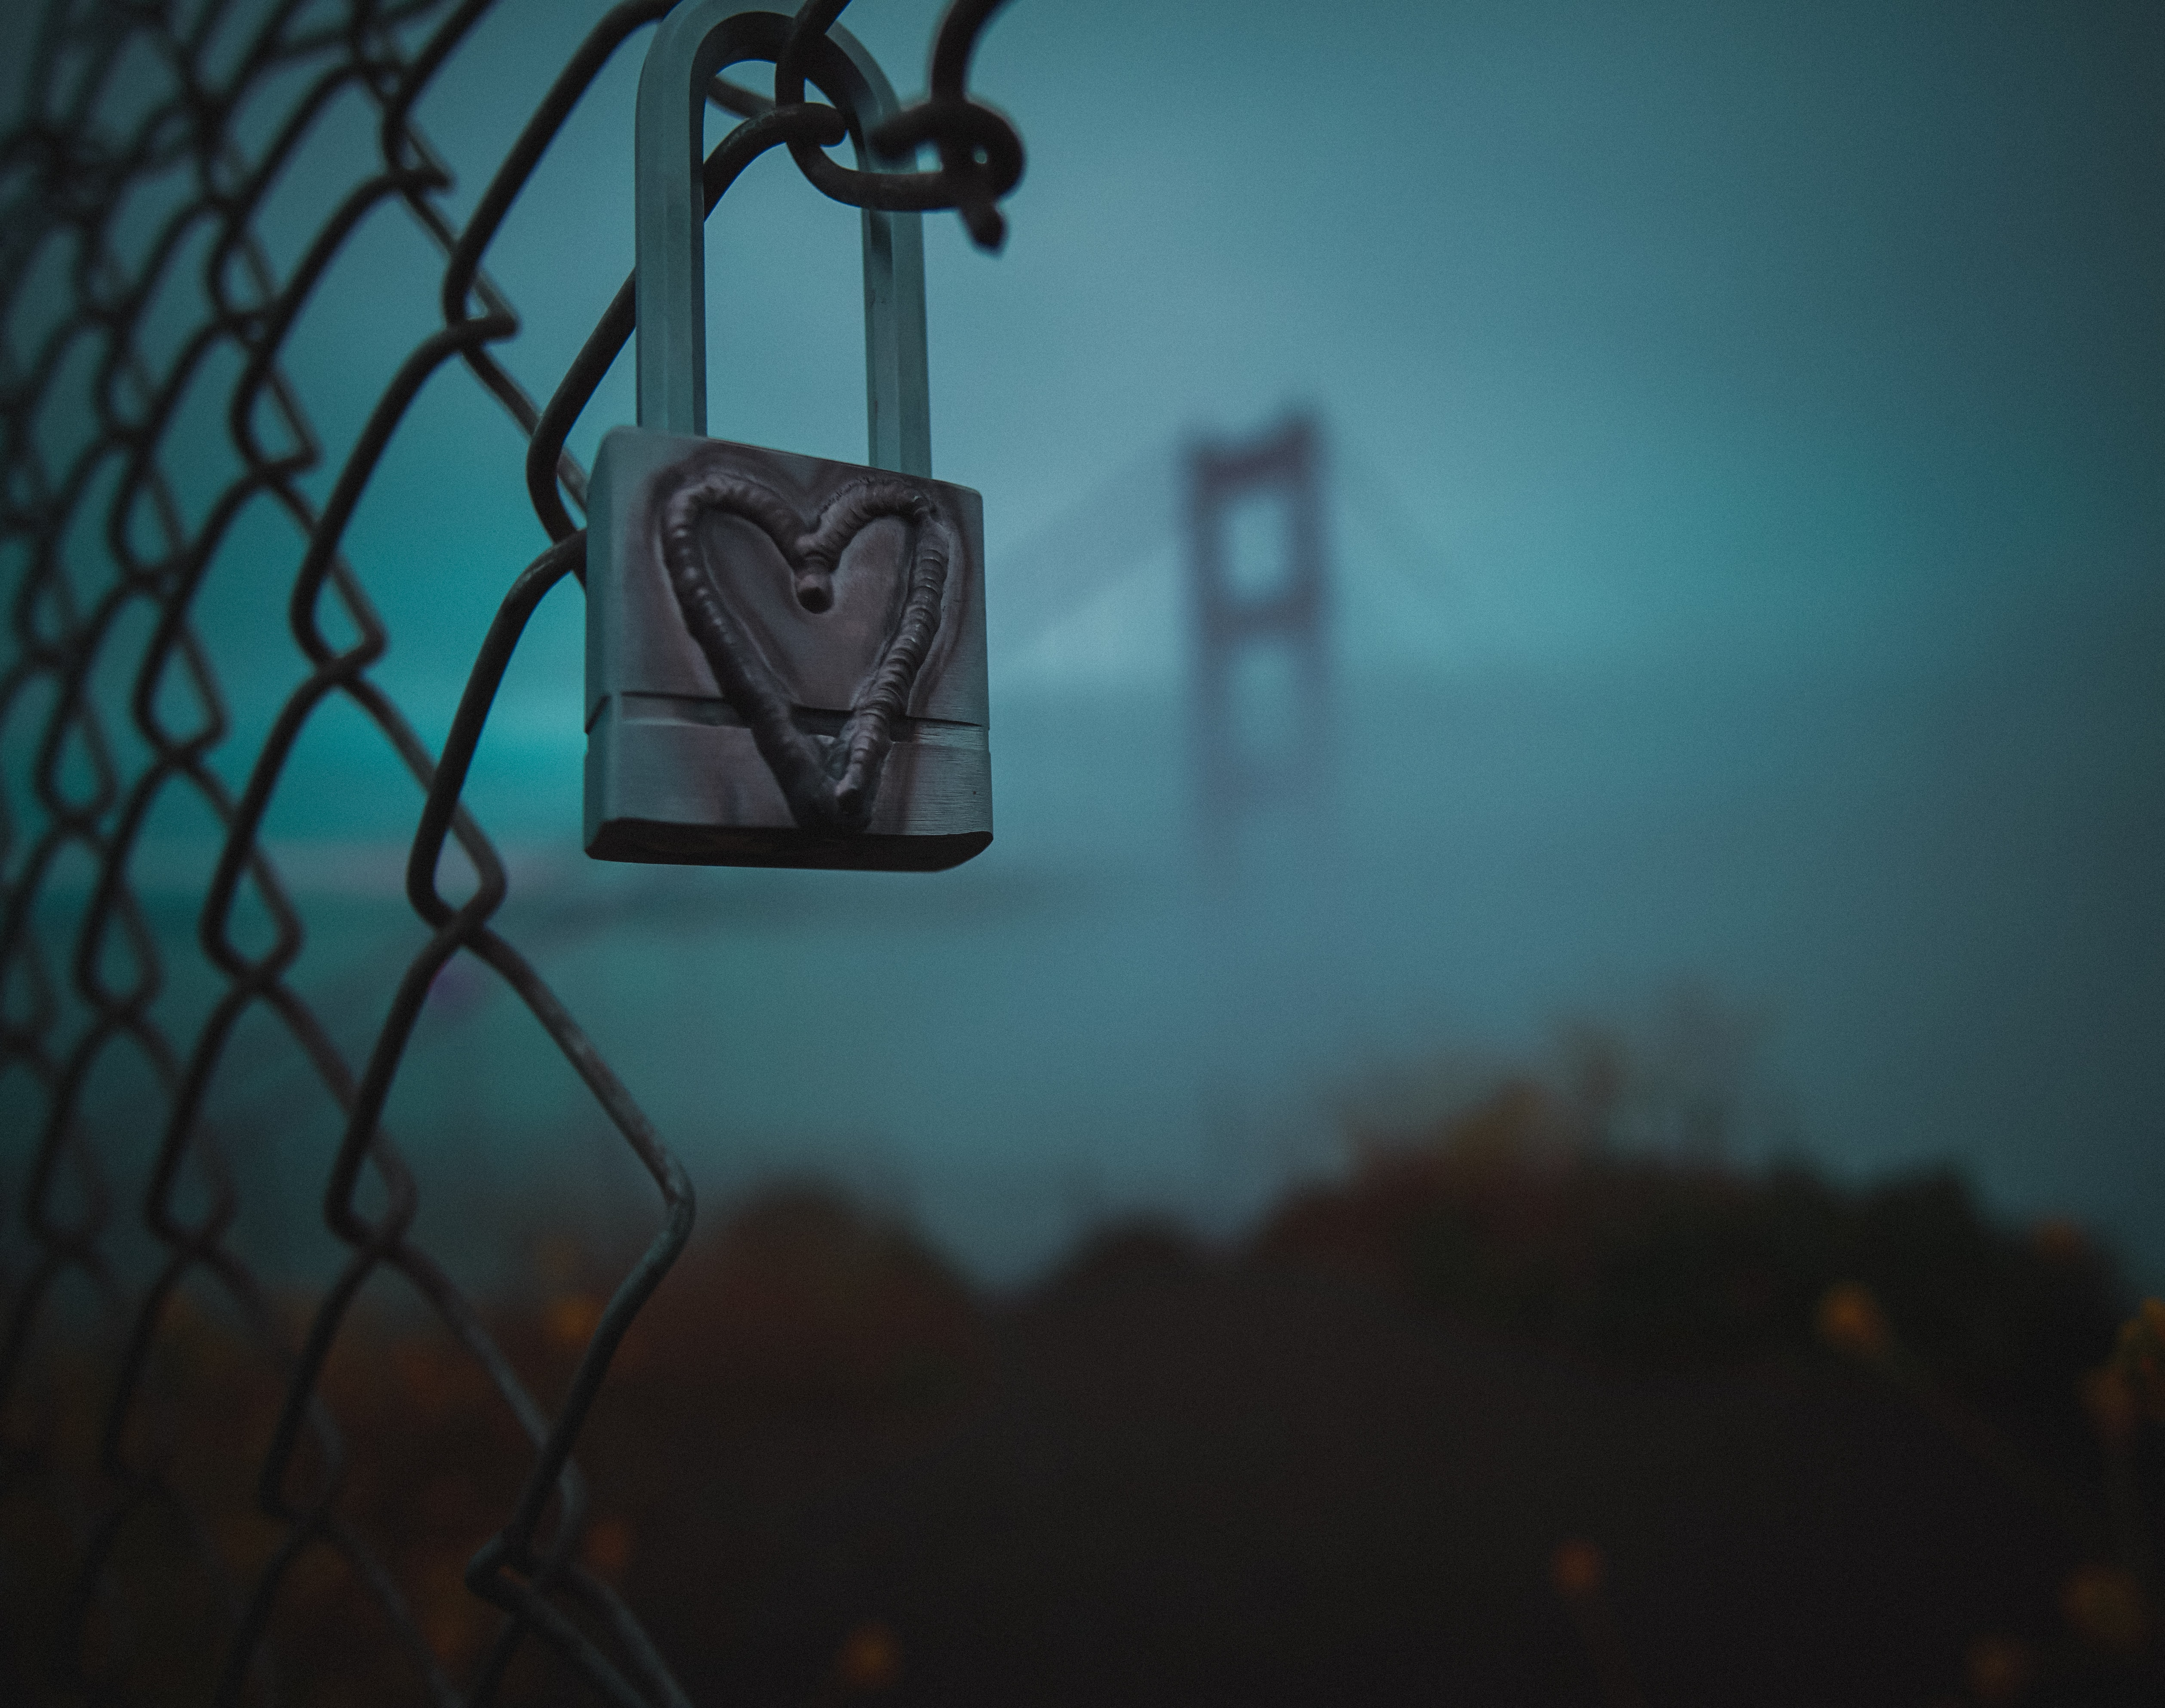 closeup photography of gray heart-printed padlock in gray metal fence